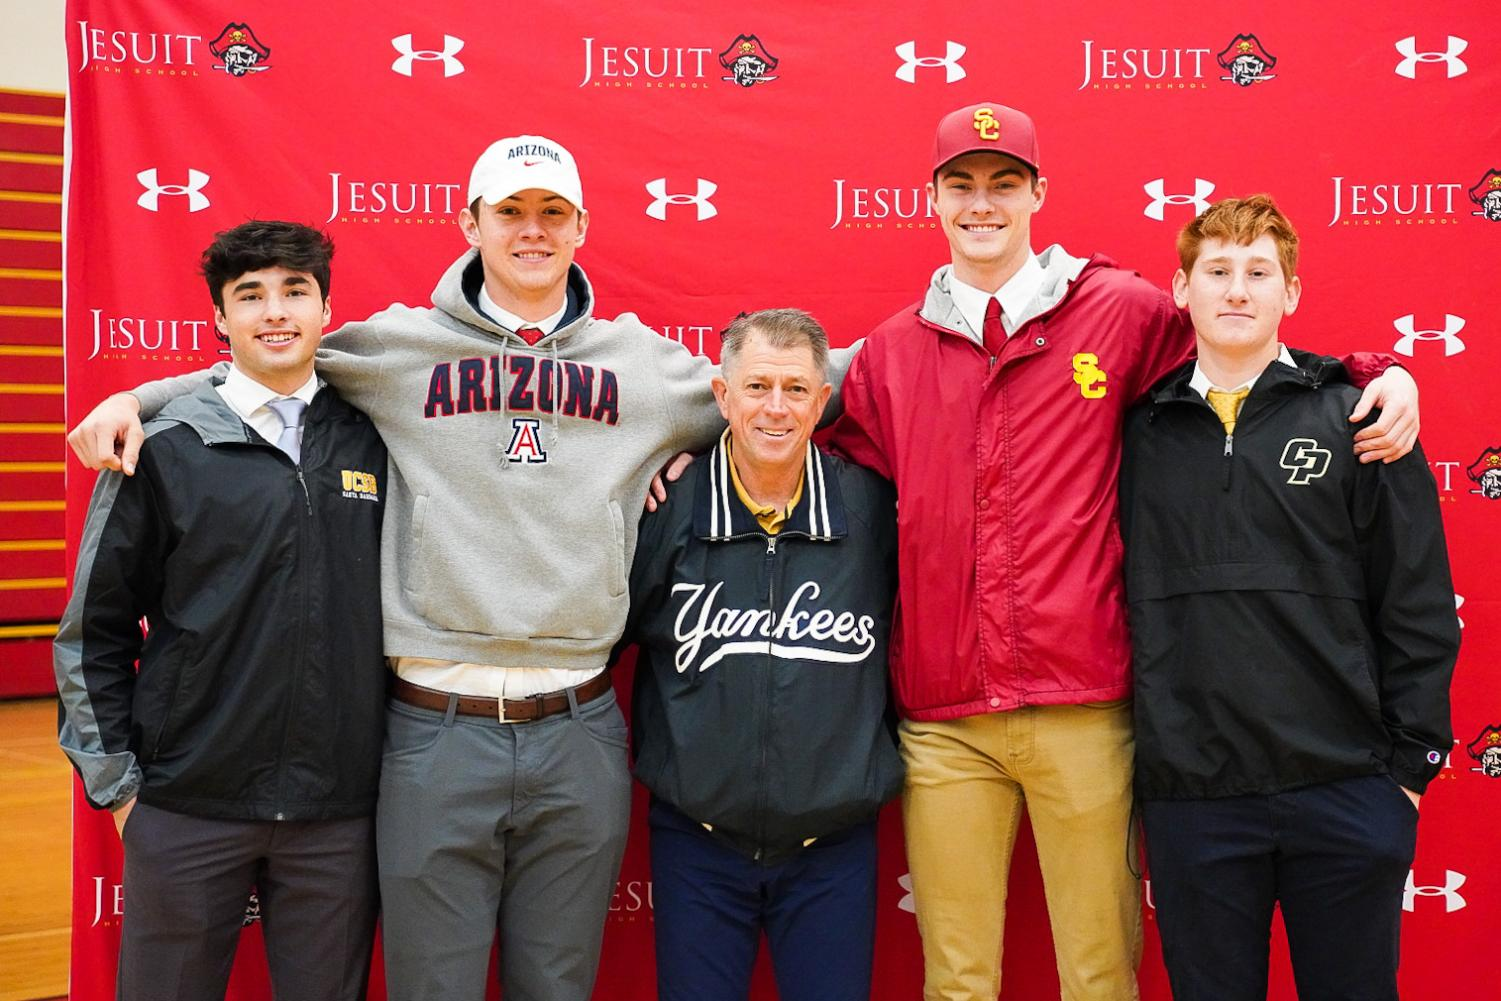 From left to right, infielder Luke Williams '20, catcher Daniel Susac '20, Varsity Baseball Head Coach Mr. Joe Potulny '76, and pitchers — Charlie Hurley '20 and Chris Baytosh '20 at Jesuit's National Signing Day in the Fr. Barry Gymnasium on Wednesday Feb. 5, 2020.